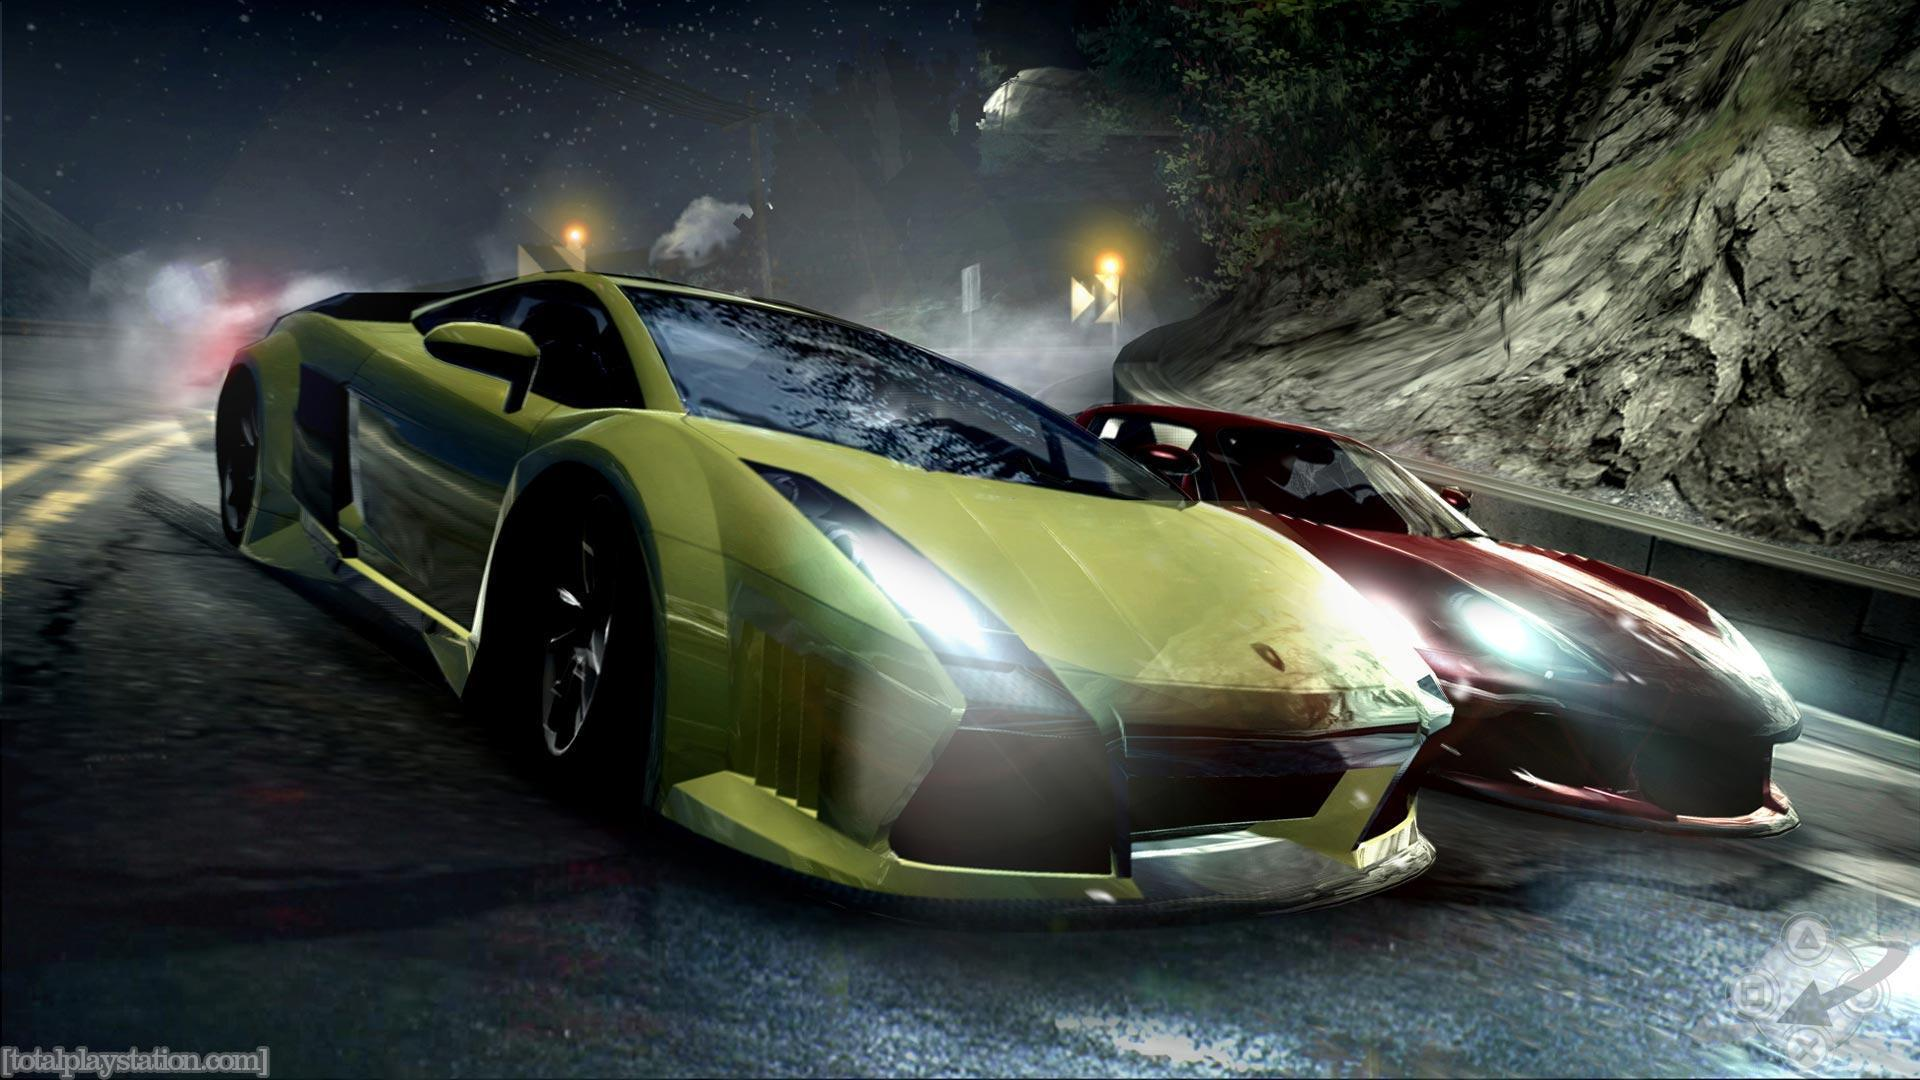 Need For Speed Wallpapers 1920x1080